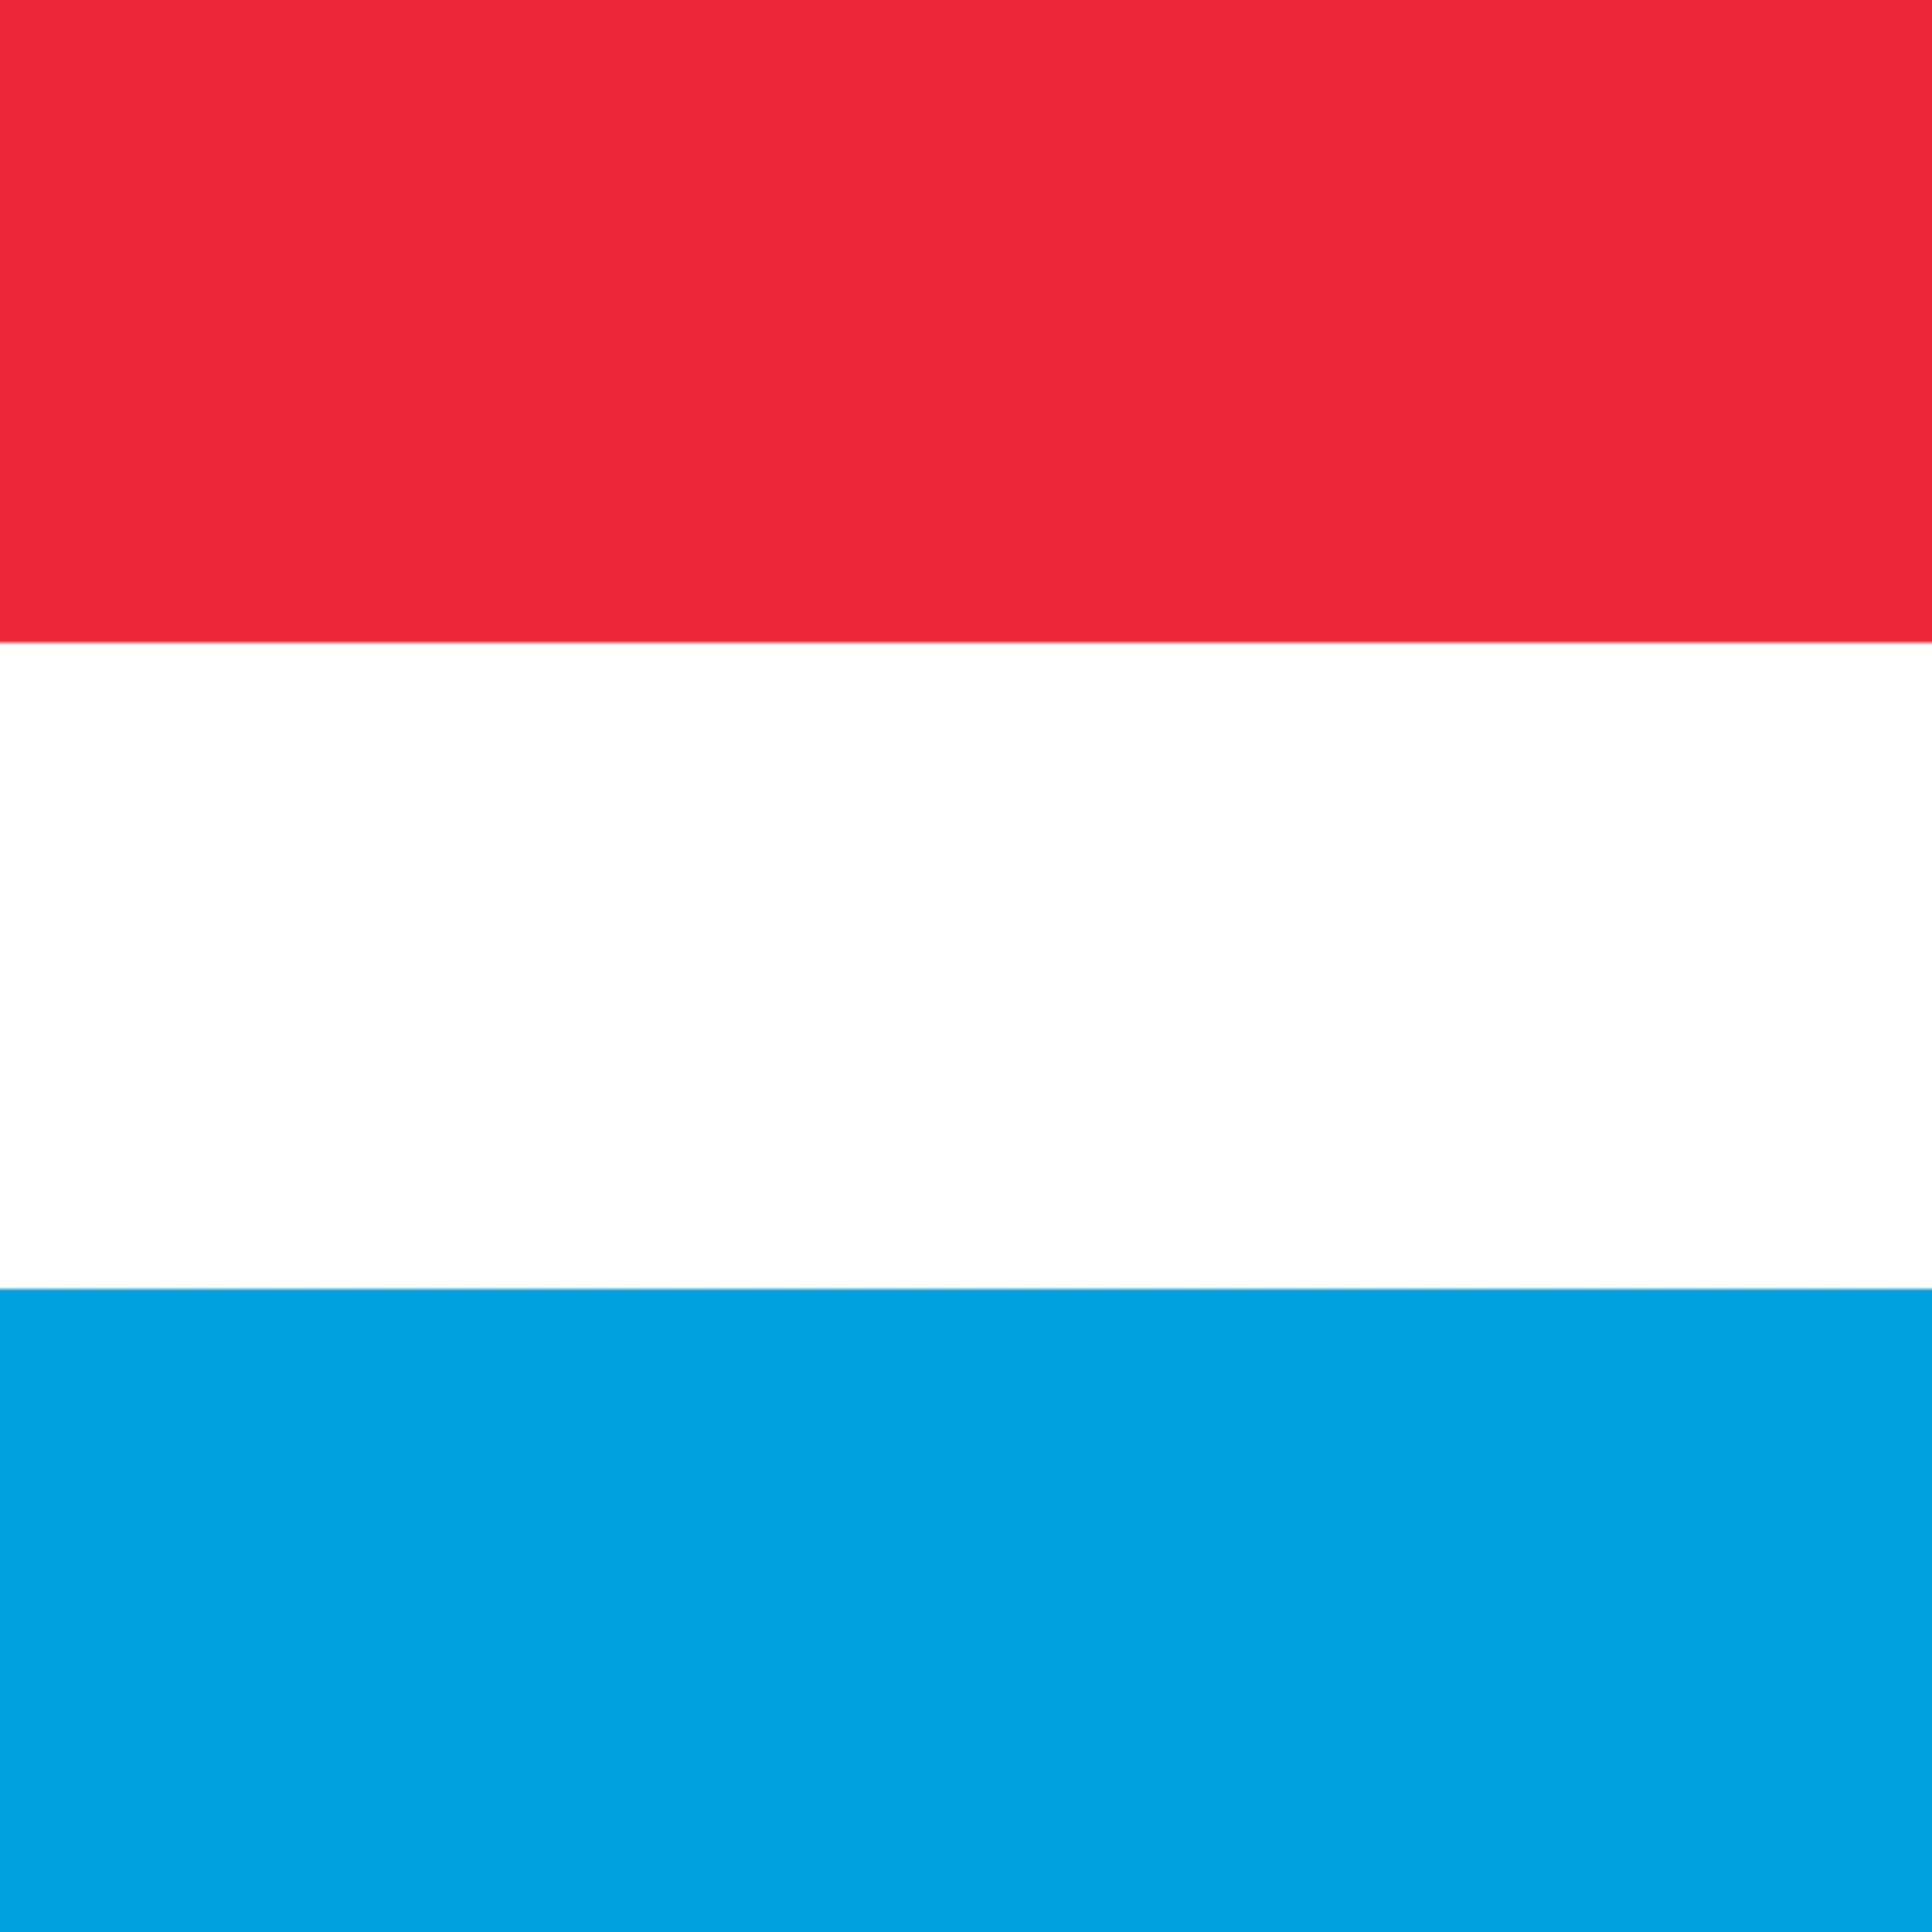 Honorary Consulate of Luxembourg (Alicante)